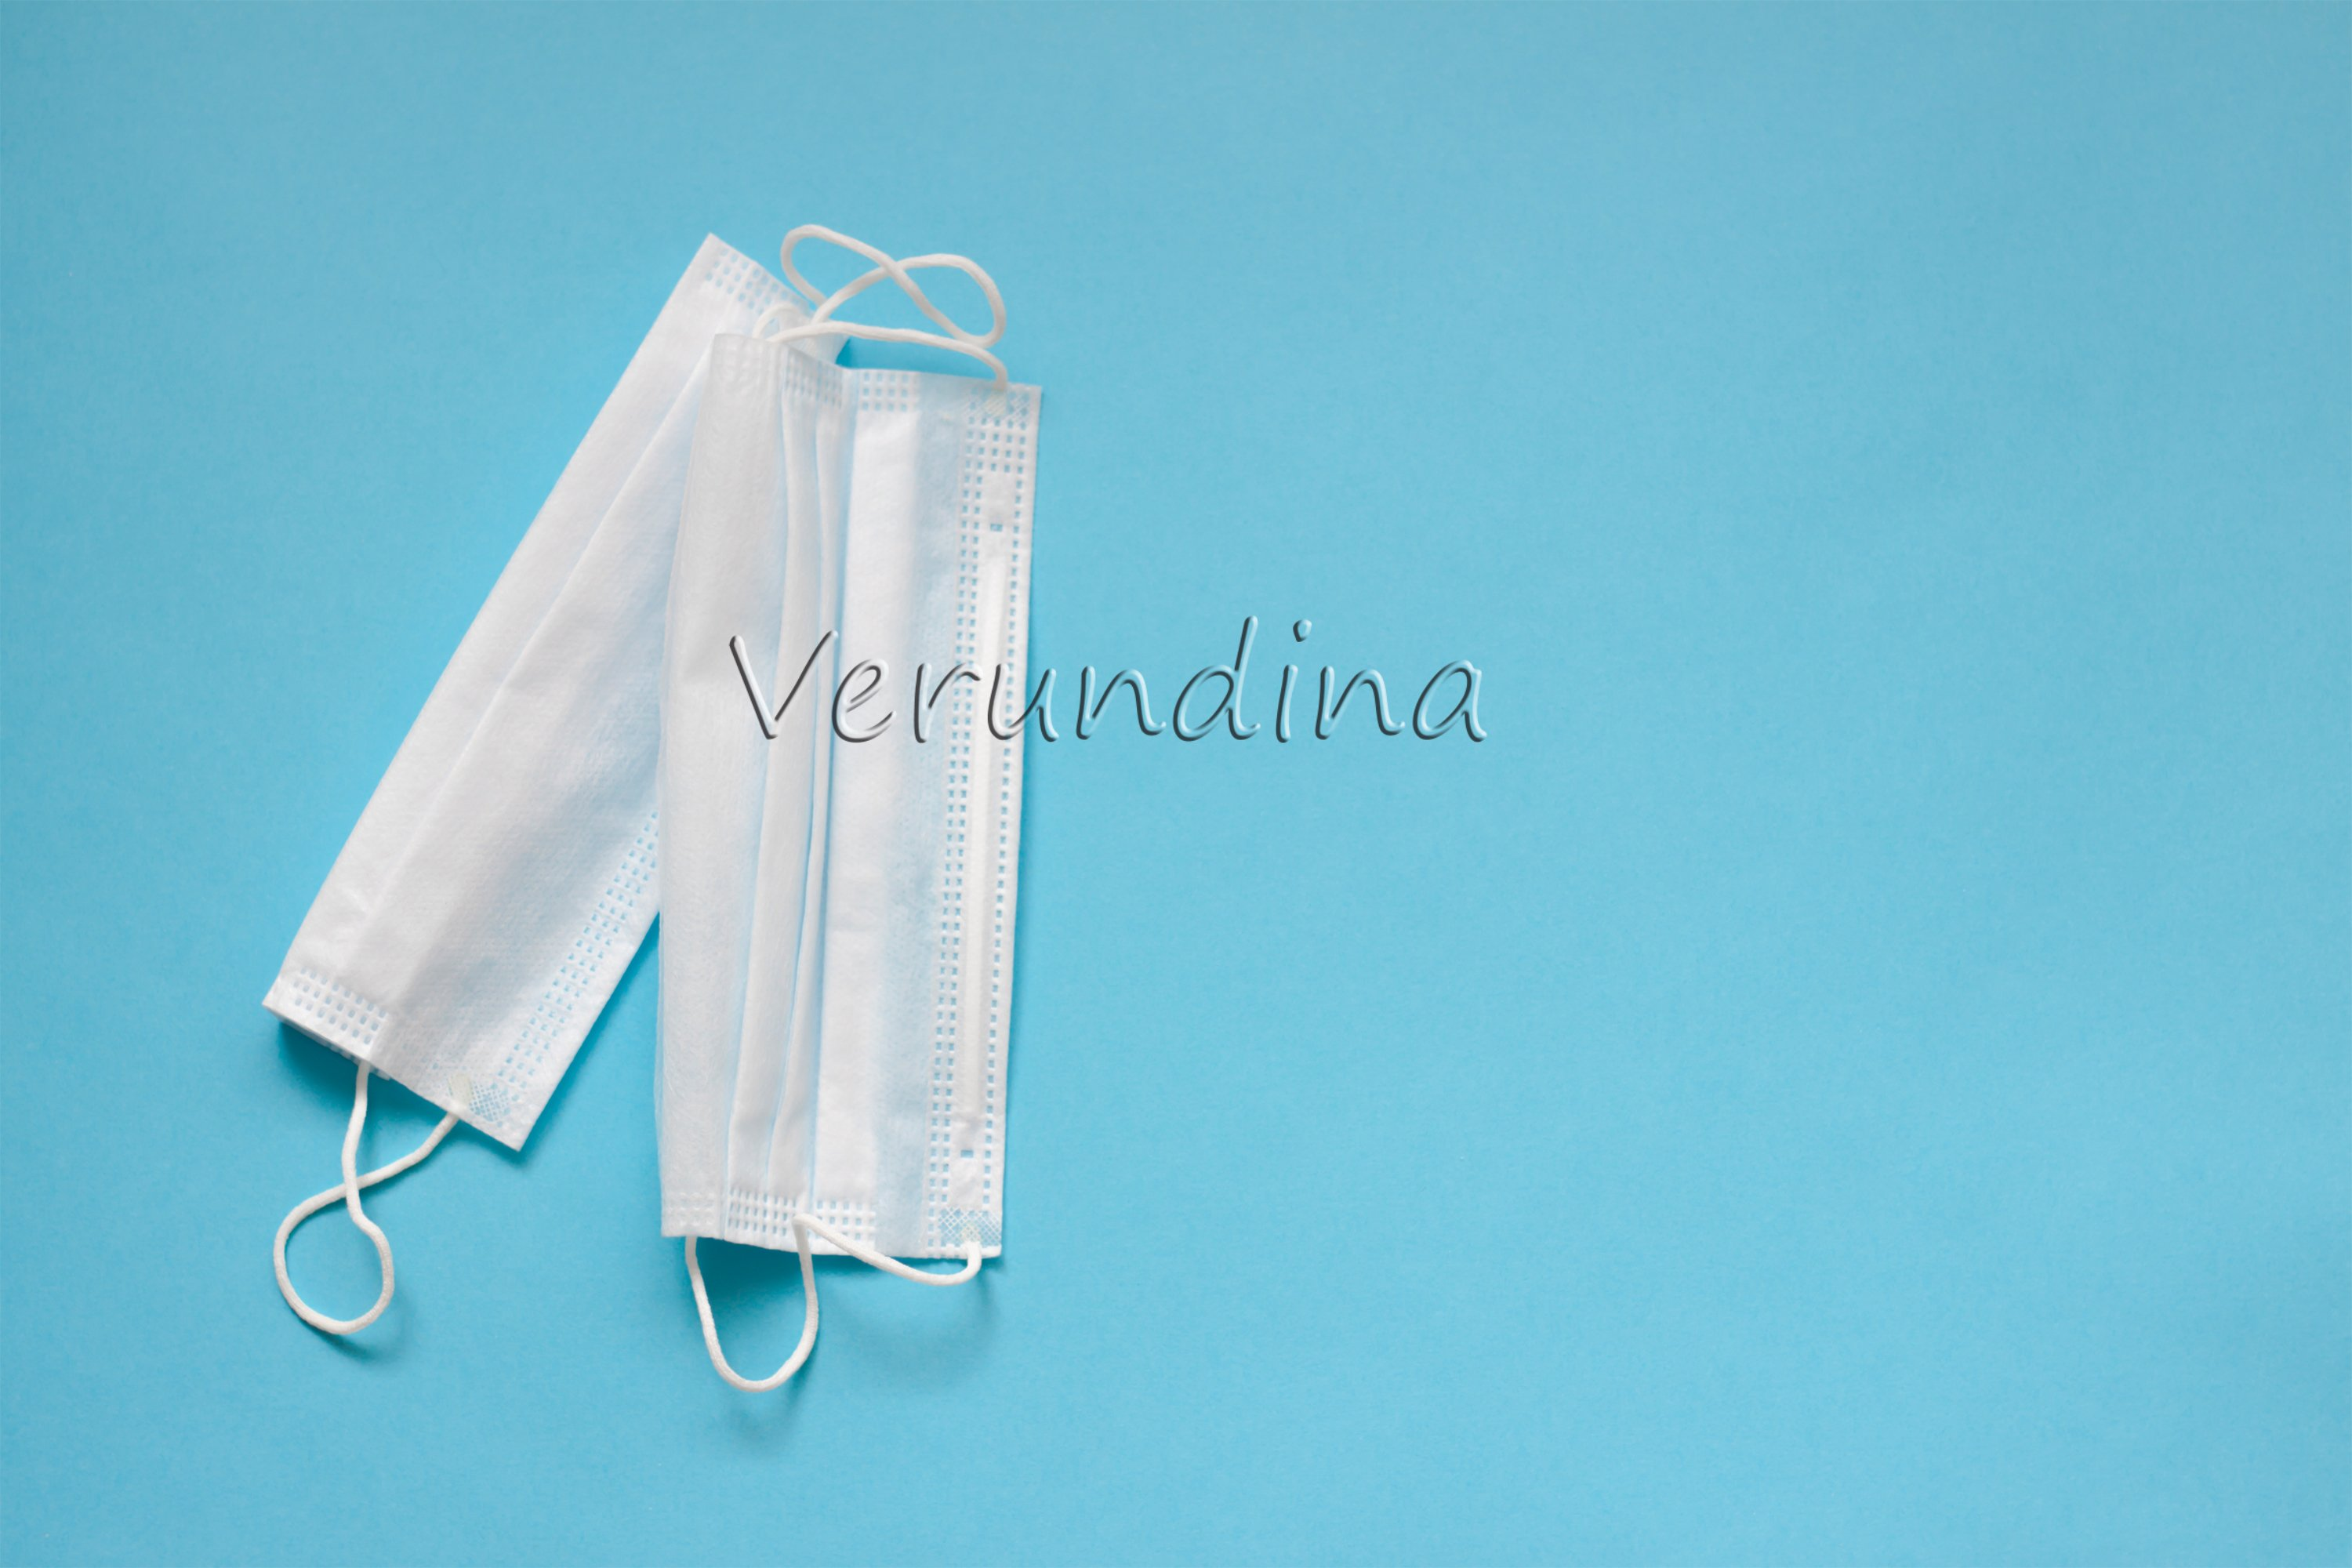 Face masks, thermometer on on a blue background example image 2